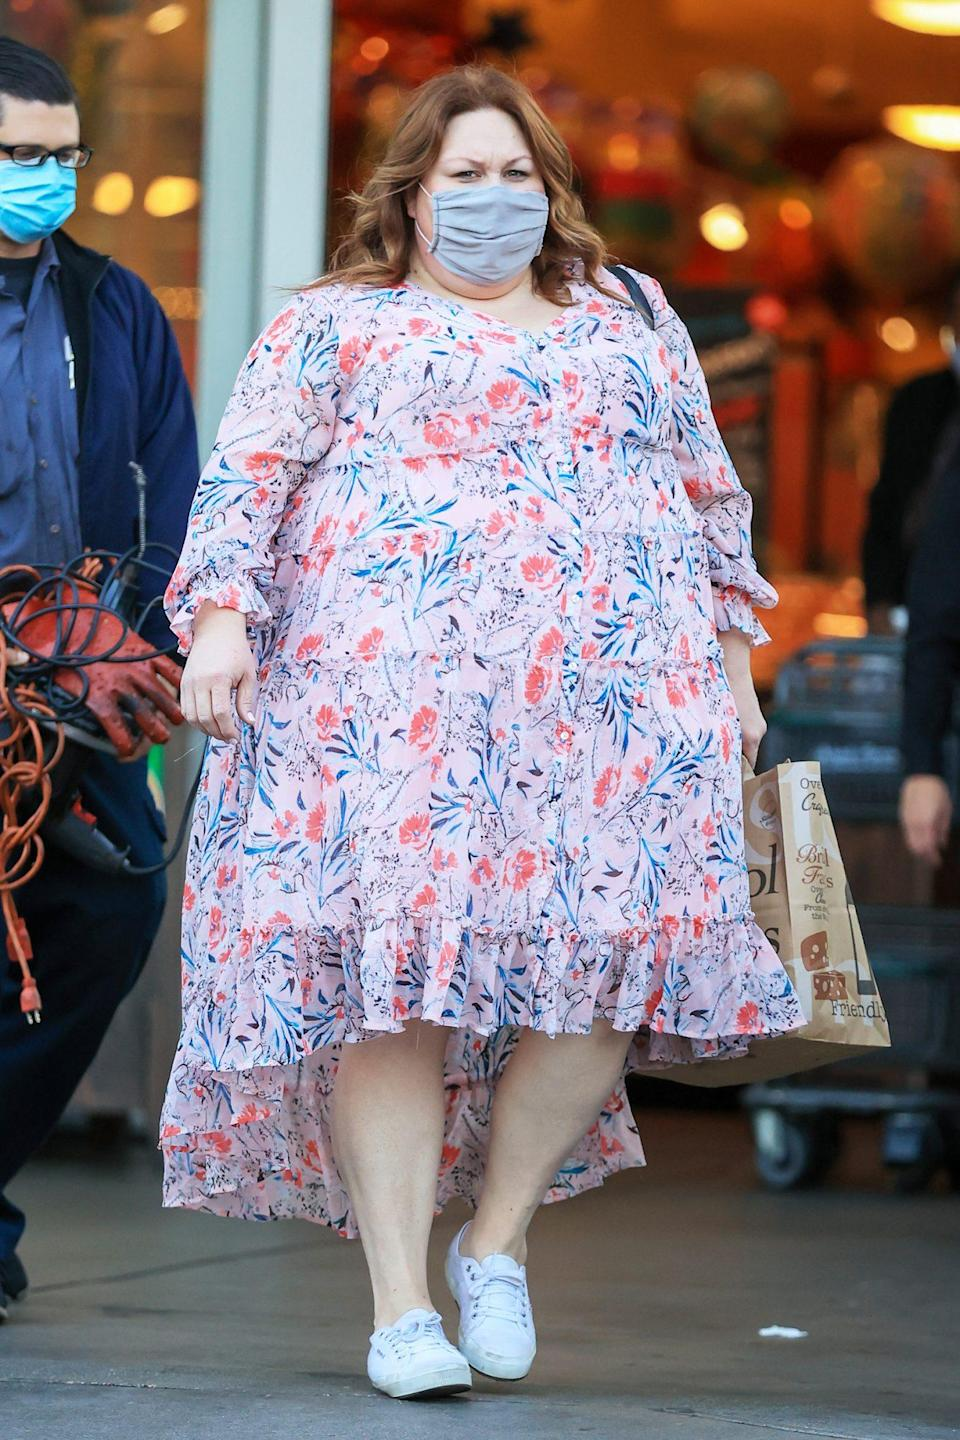 <p>Chrissy Metz looks ready for spring in a tiered floral dress on Thursday at Bristol Farms in L.A.</p>